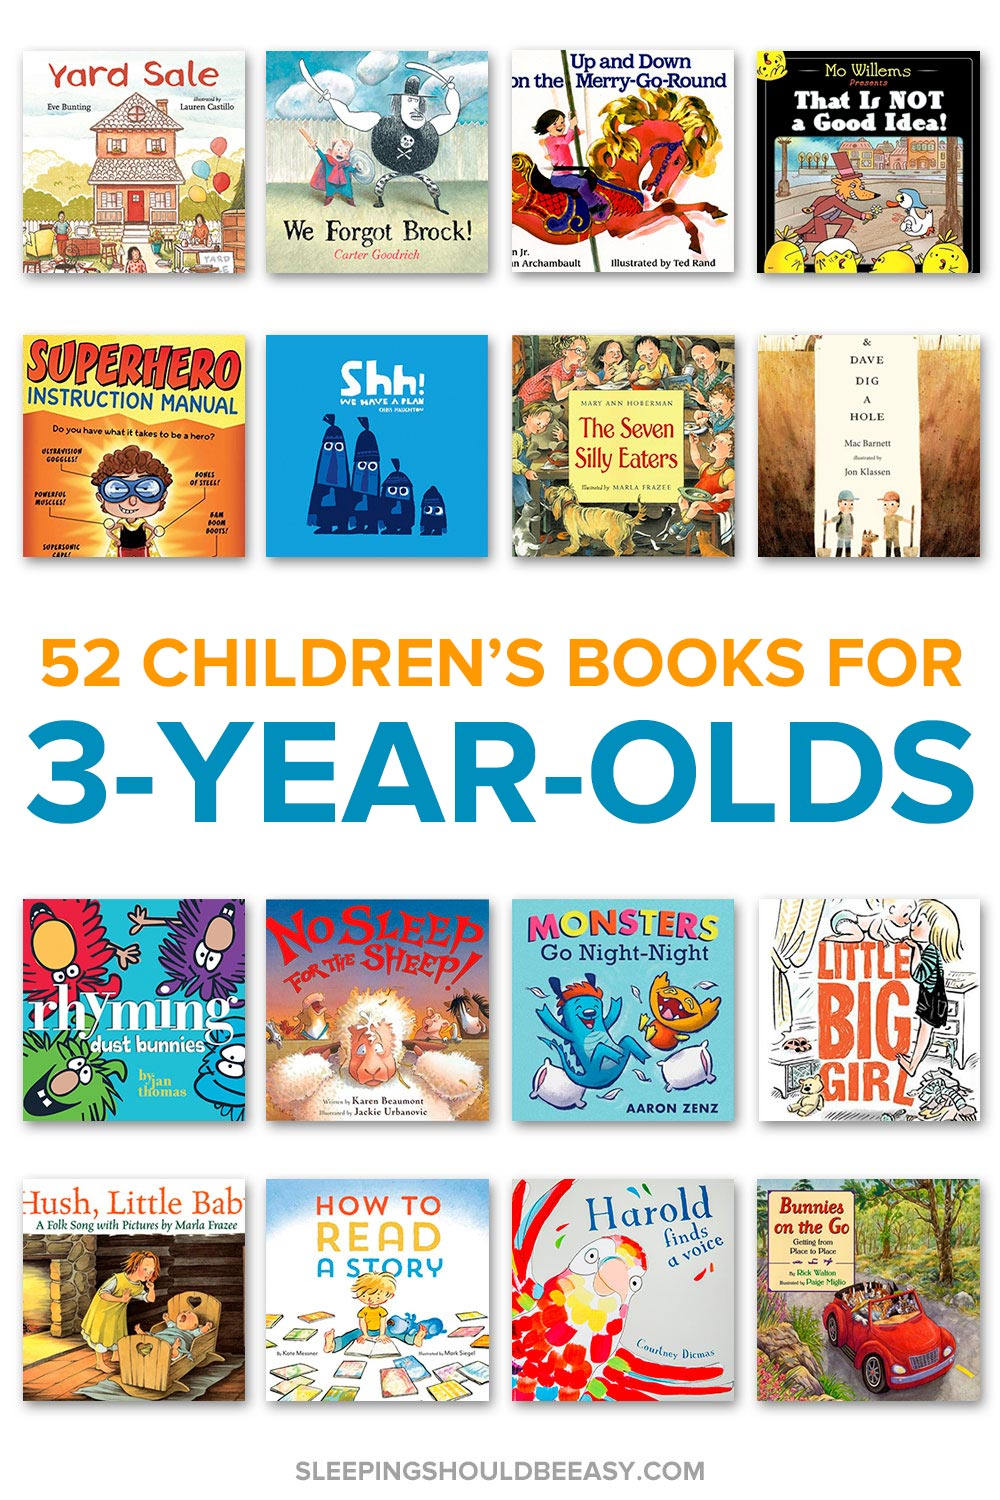 A collection of children's books for 3 year olds